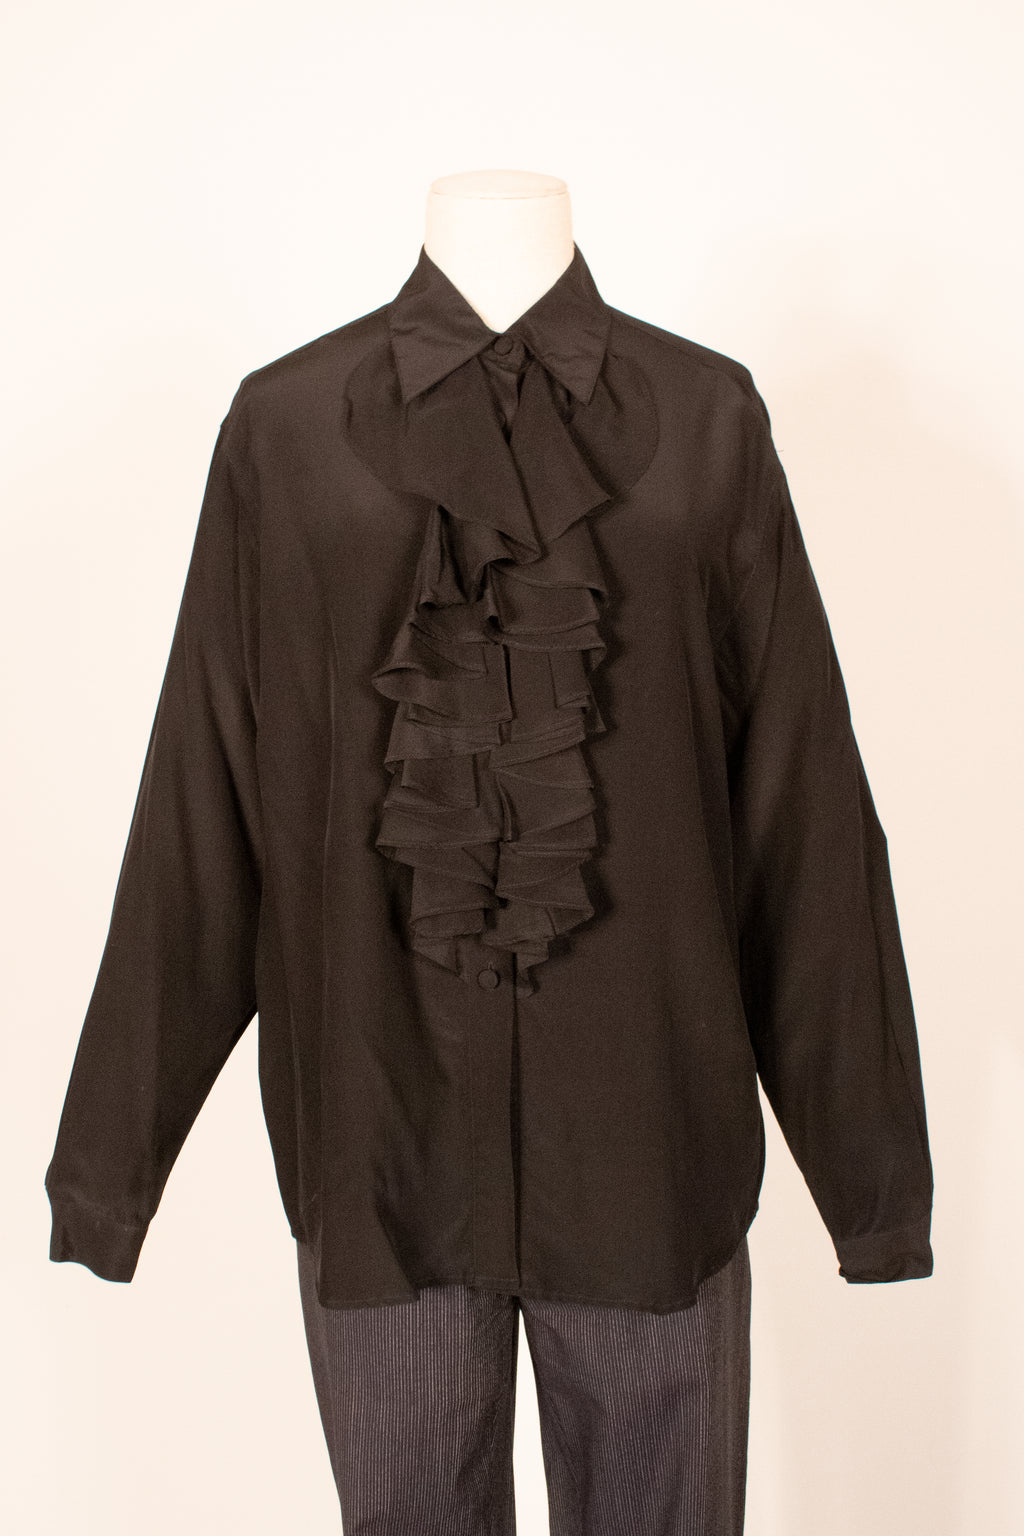 Henri Bendel black silk ruffle blouse